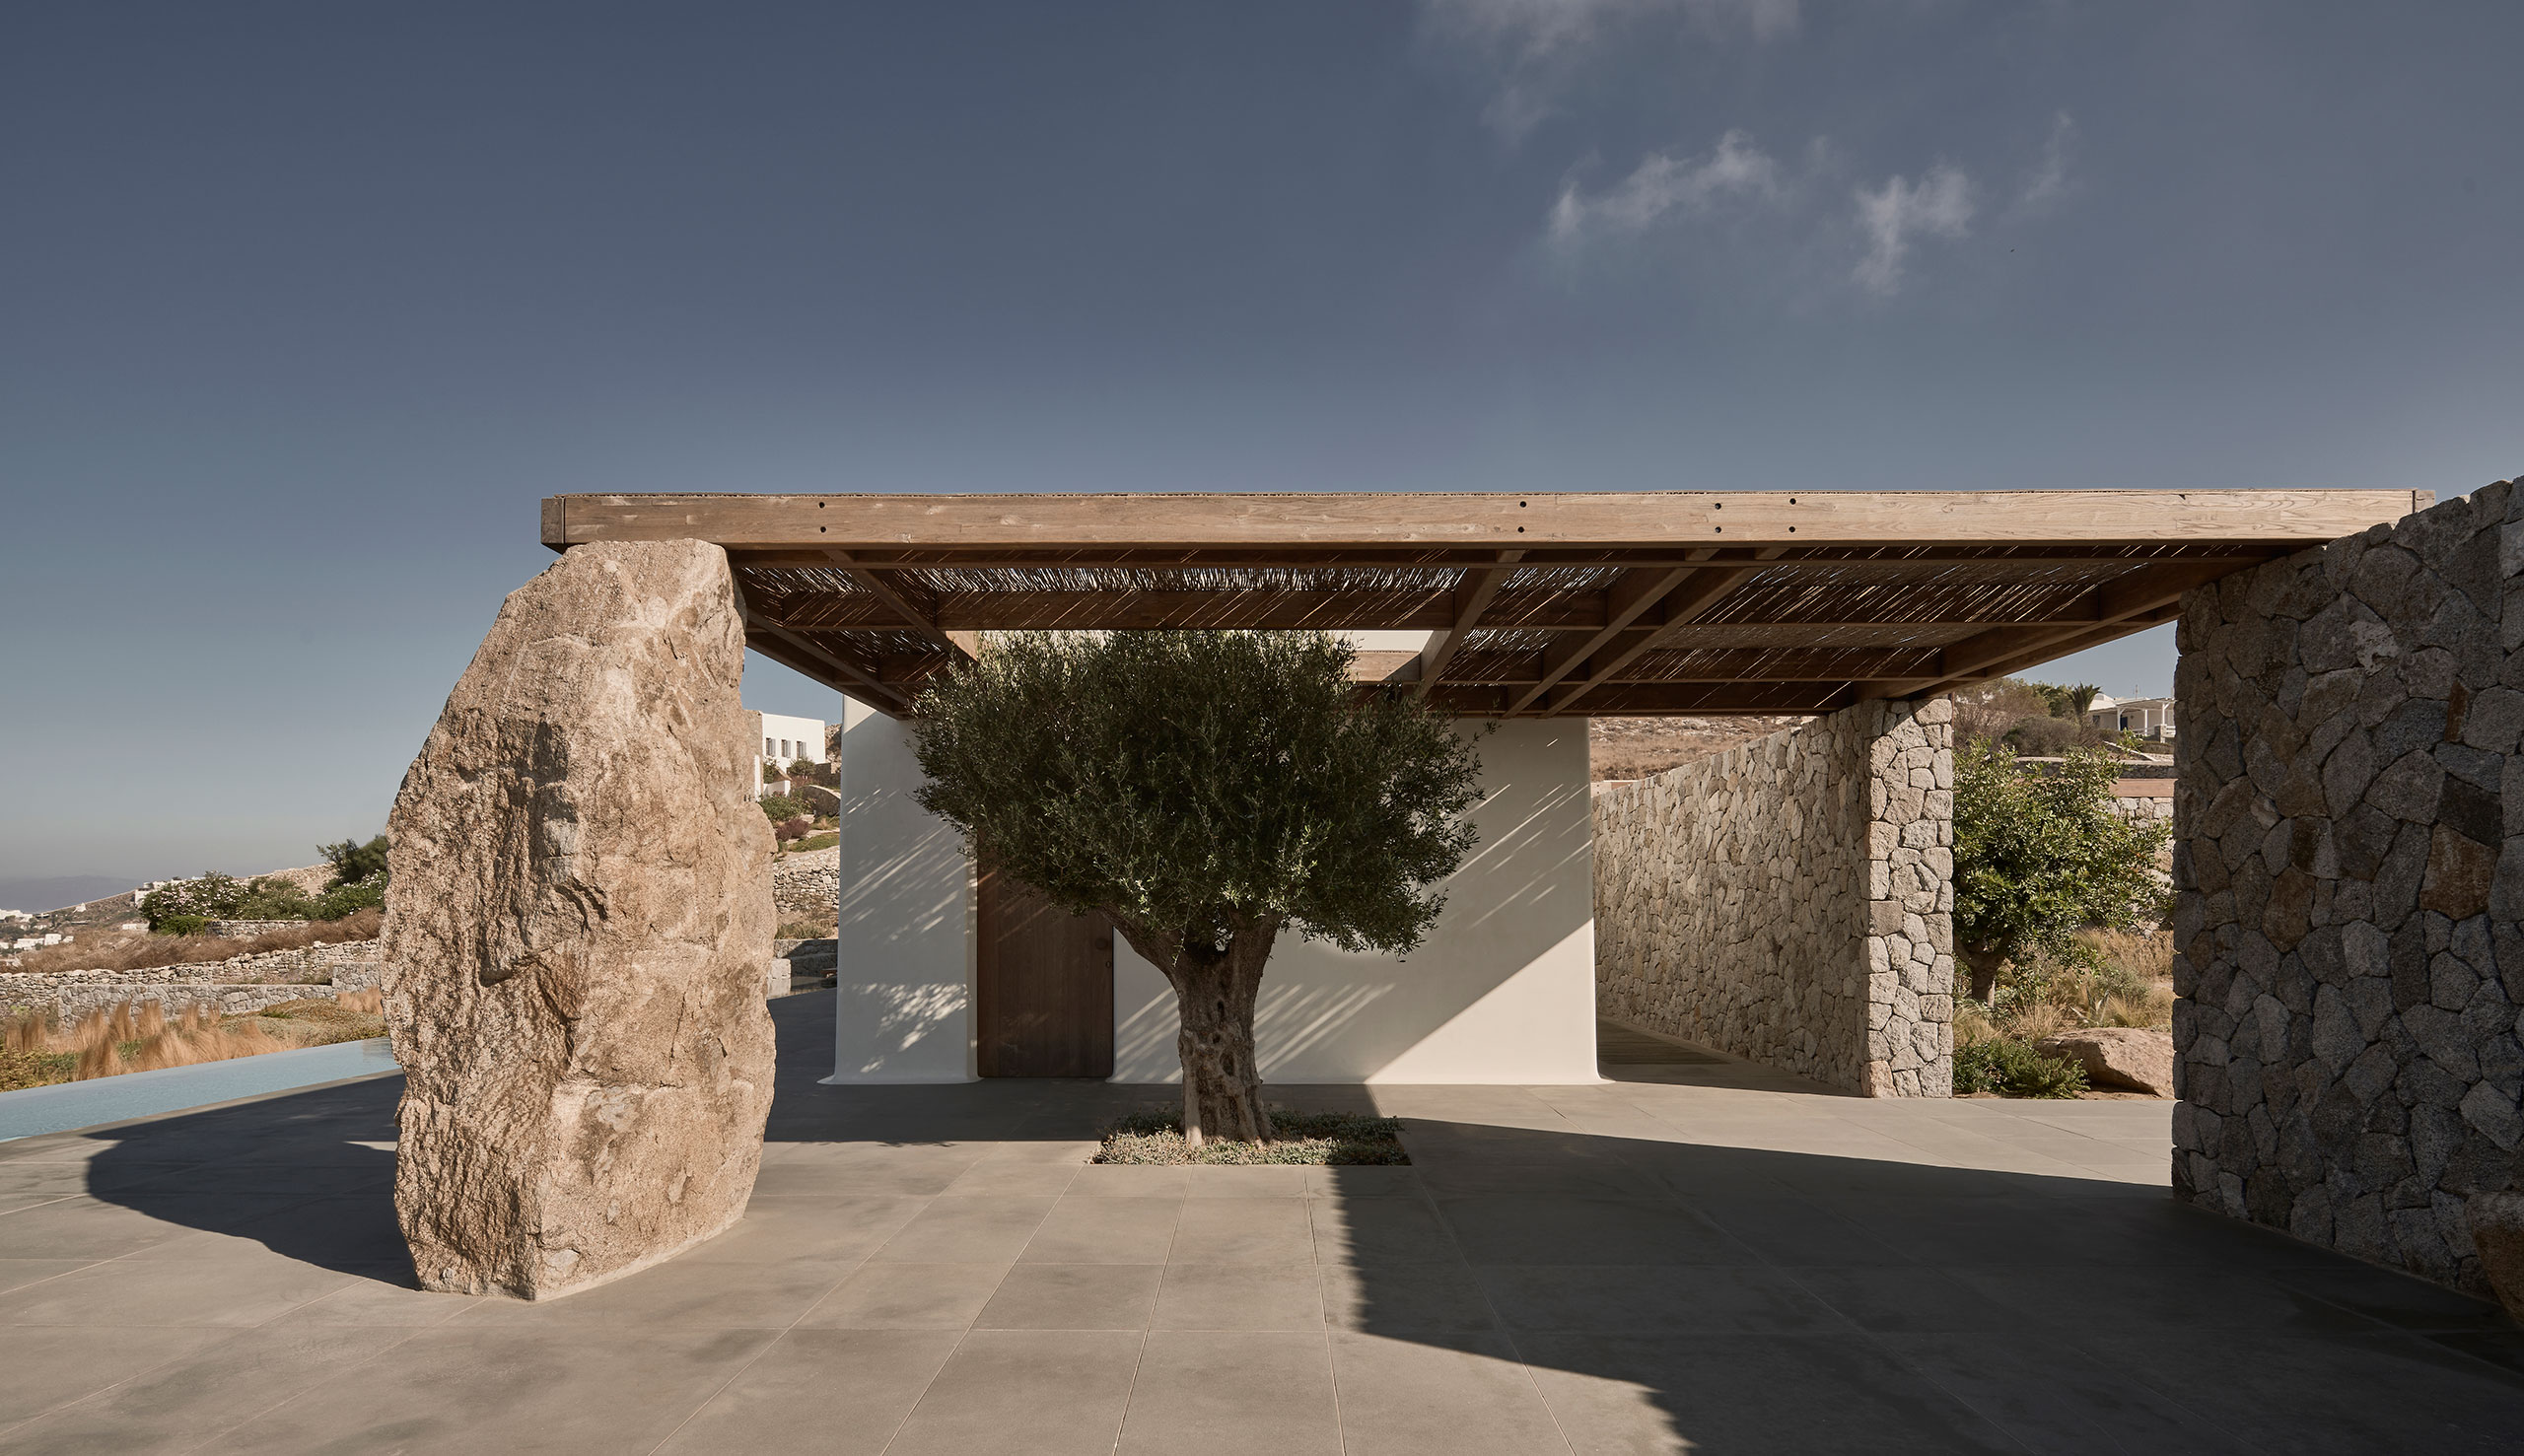 Villa Mandra in Mykonos by K-Studio. Photography by Claus Brechenmacher and Reiner Baumann.